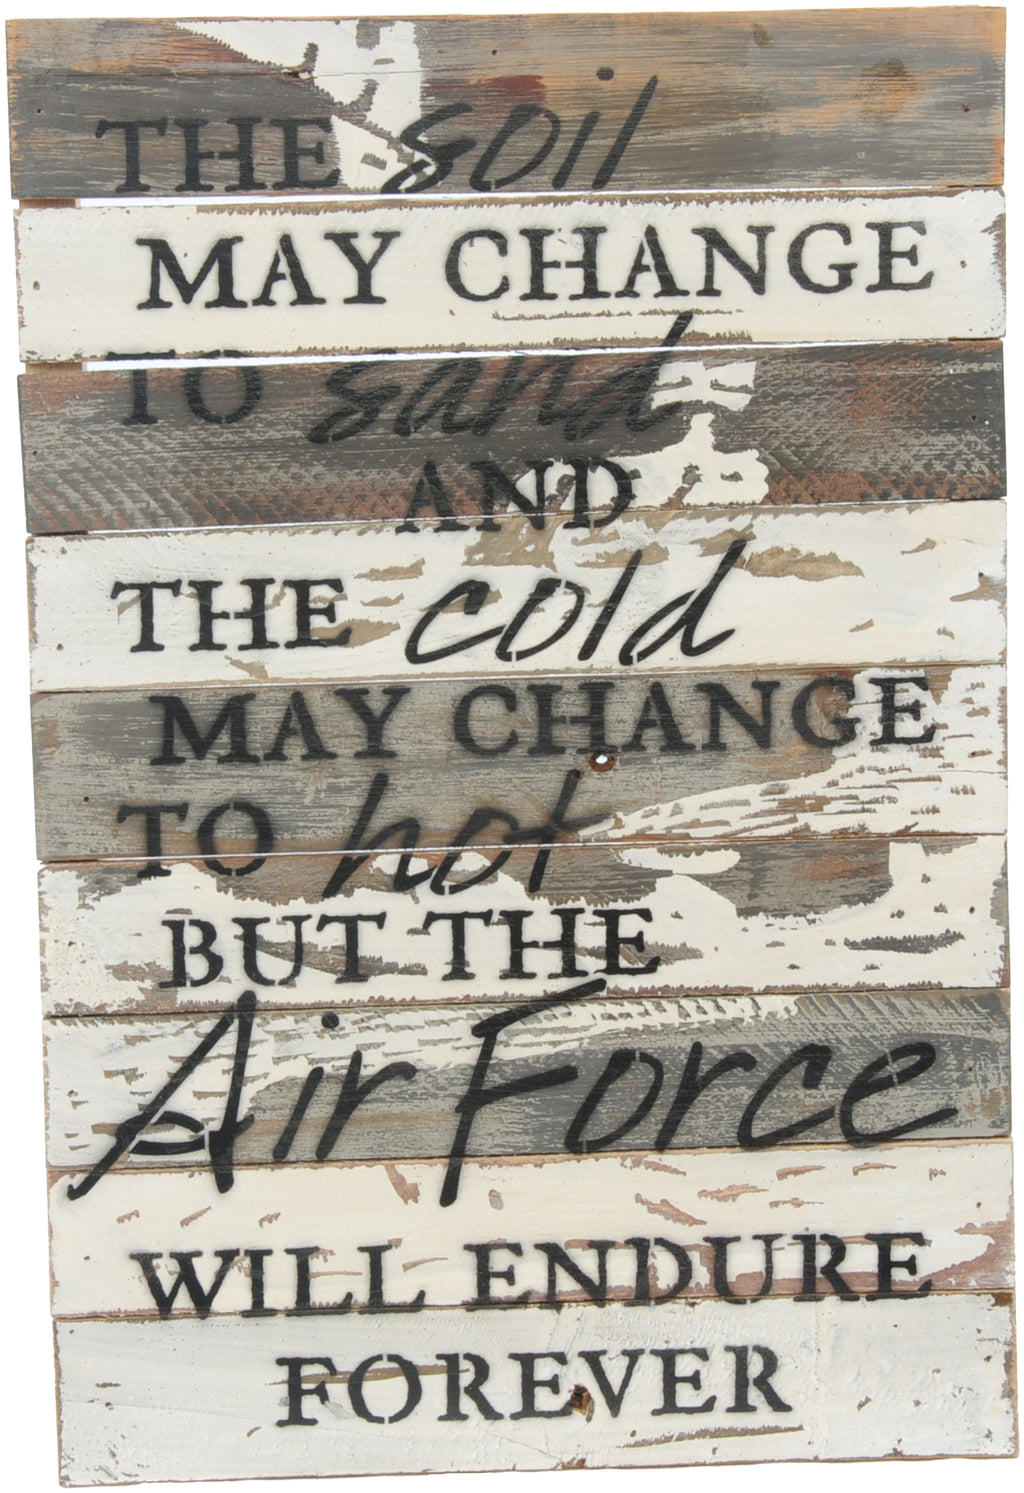 12x18 ENDURE FOREVER WOOD SIGN - AIR FORCE - UNIFORMED®